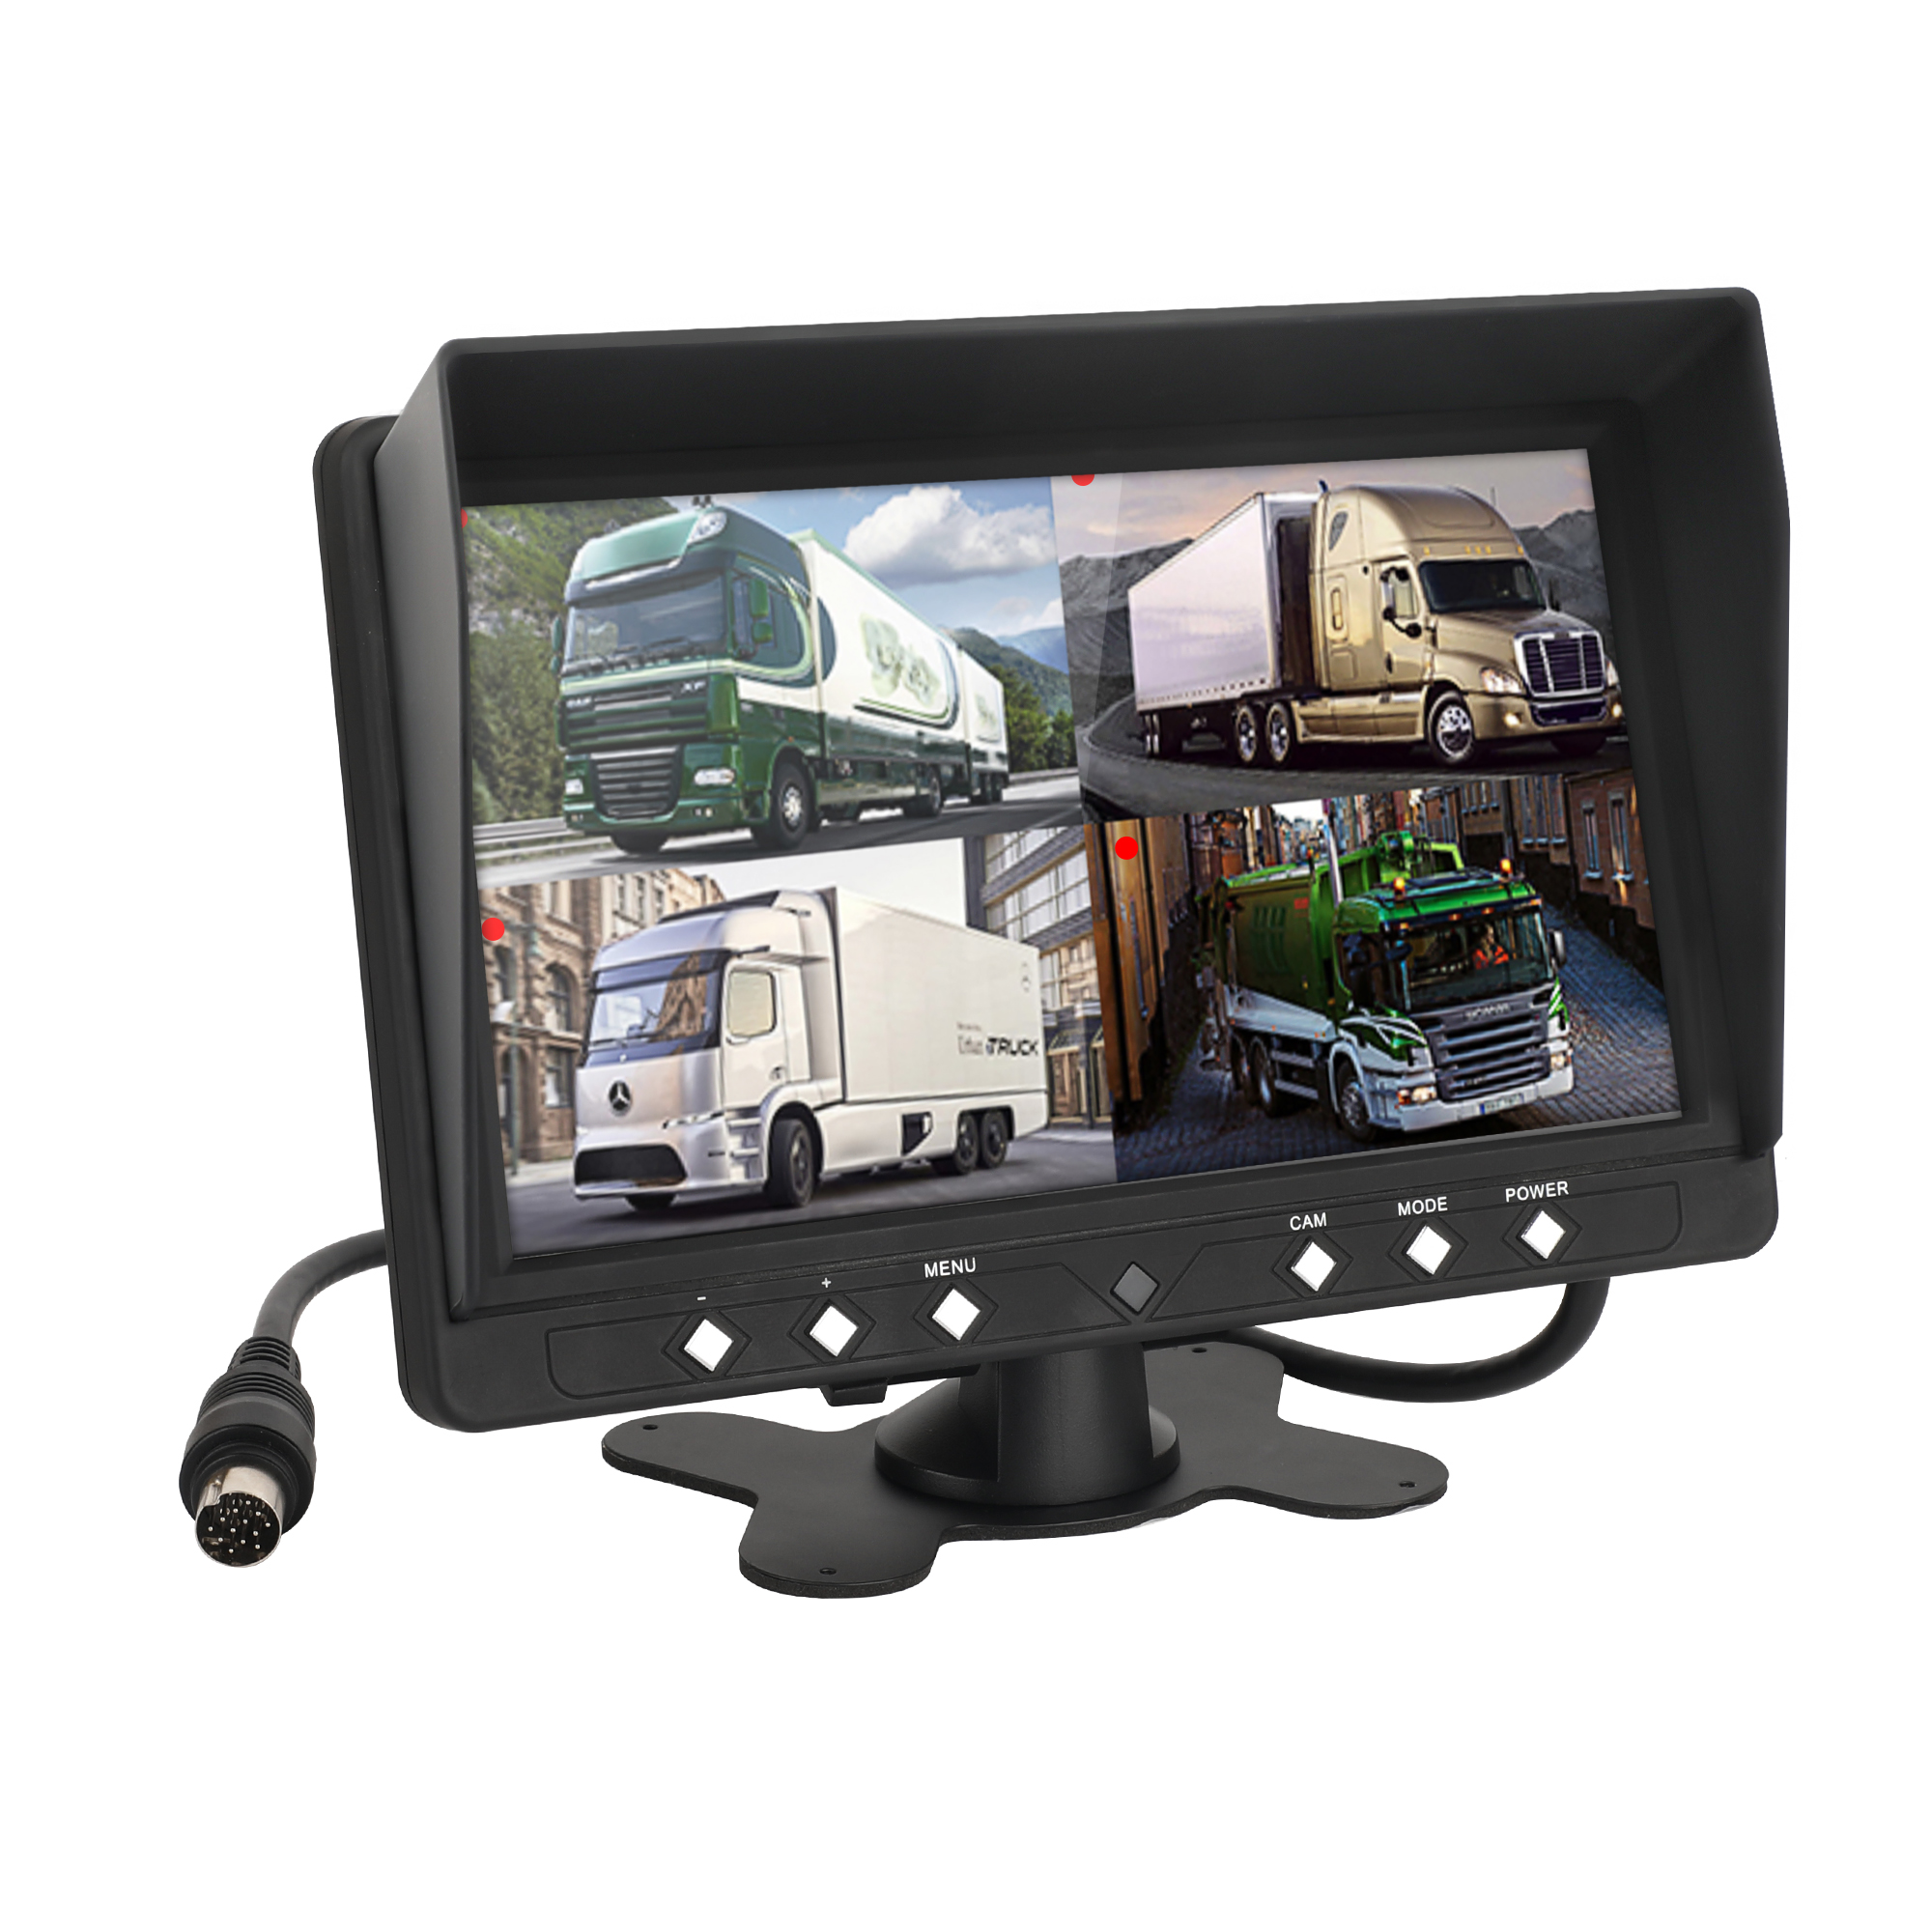 CL-9204F Big Car 9 inch <strong>4</strong> Channel LCD Car Monitor